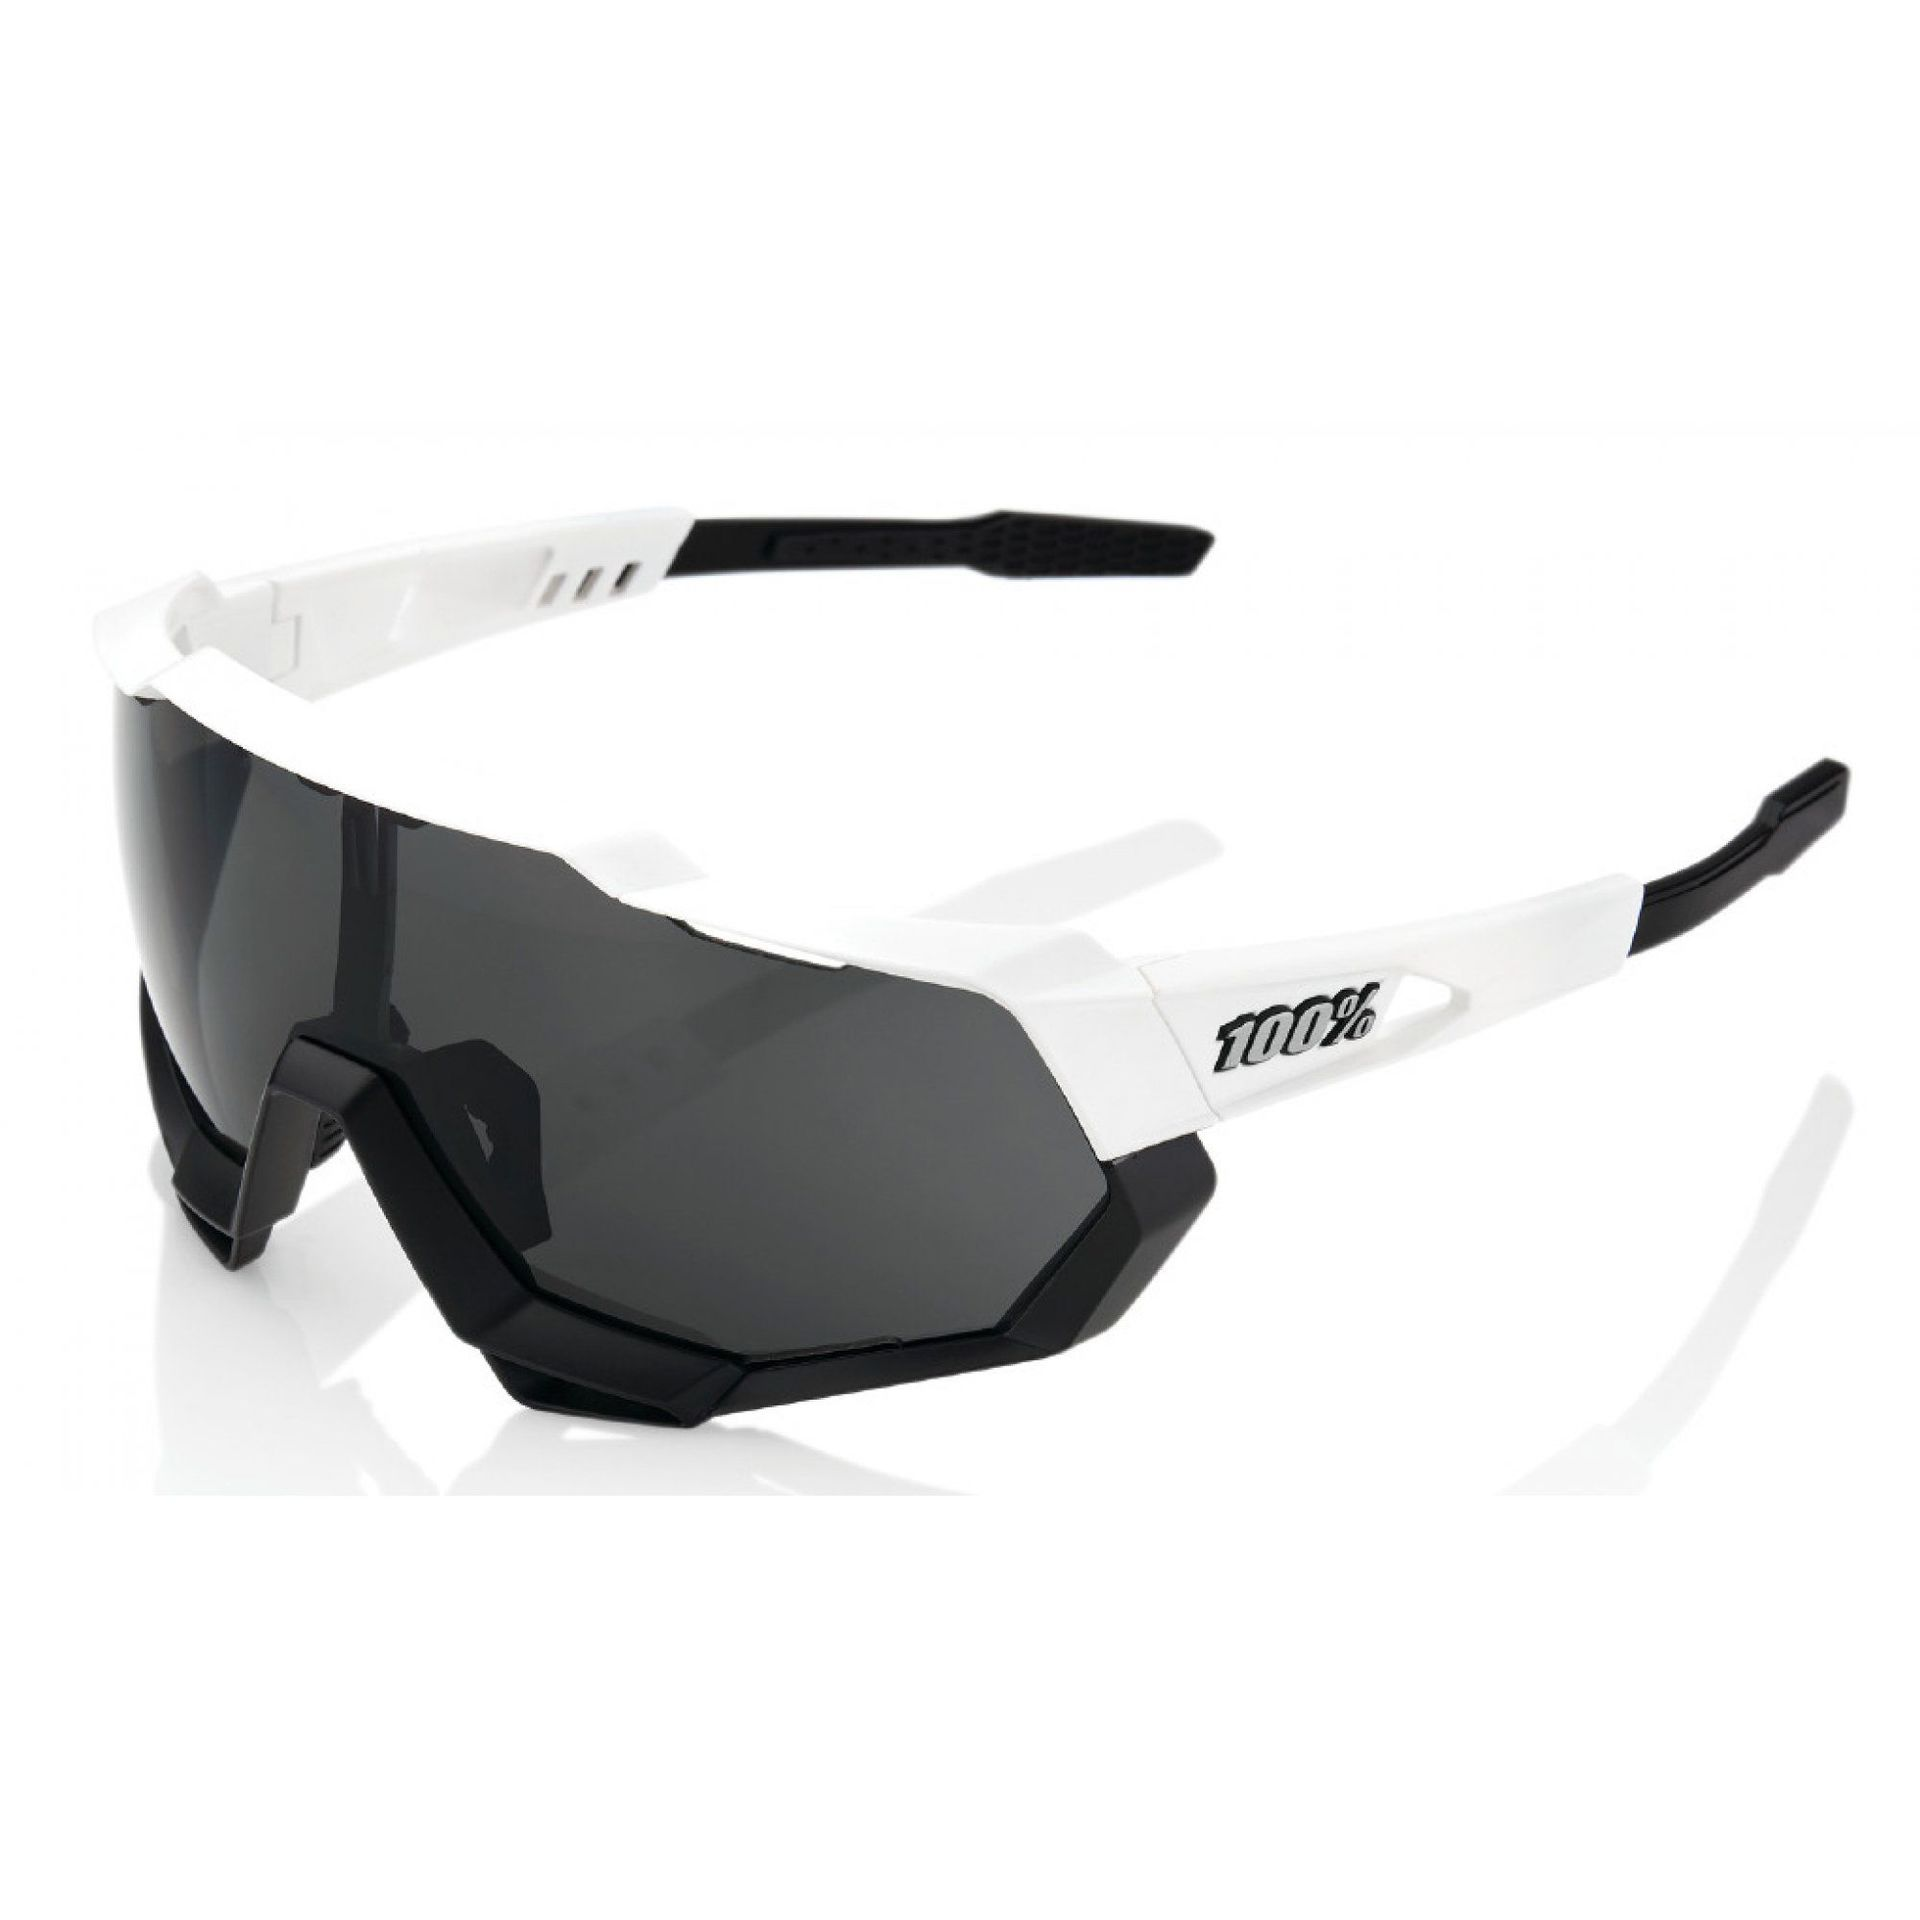 OKULARY 100% SPEEDTRAP MATTE WHITE|BLACK SMOKE 1